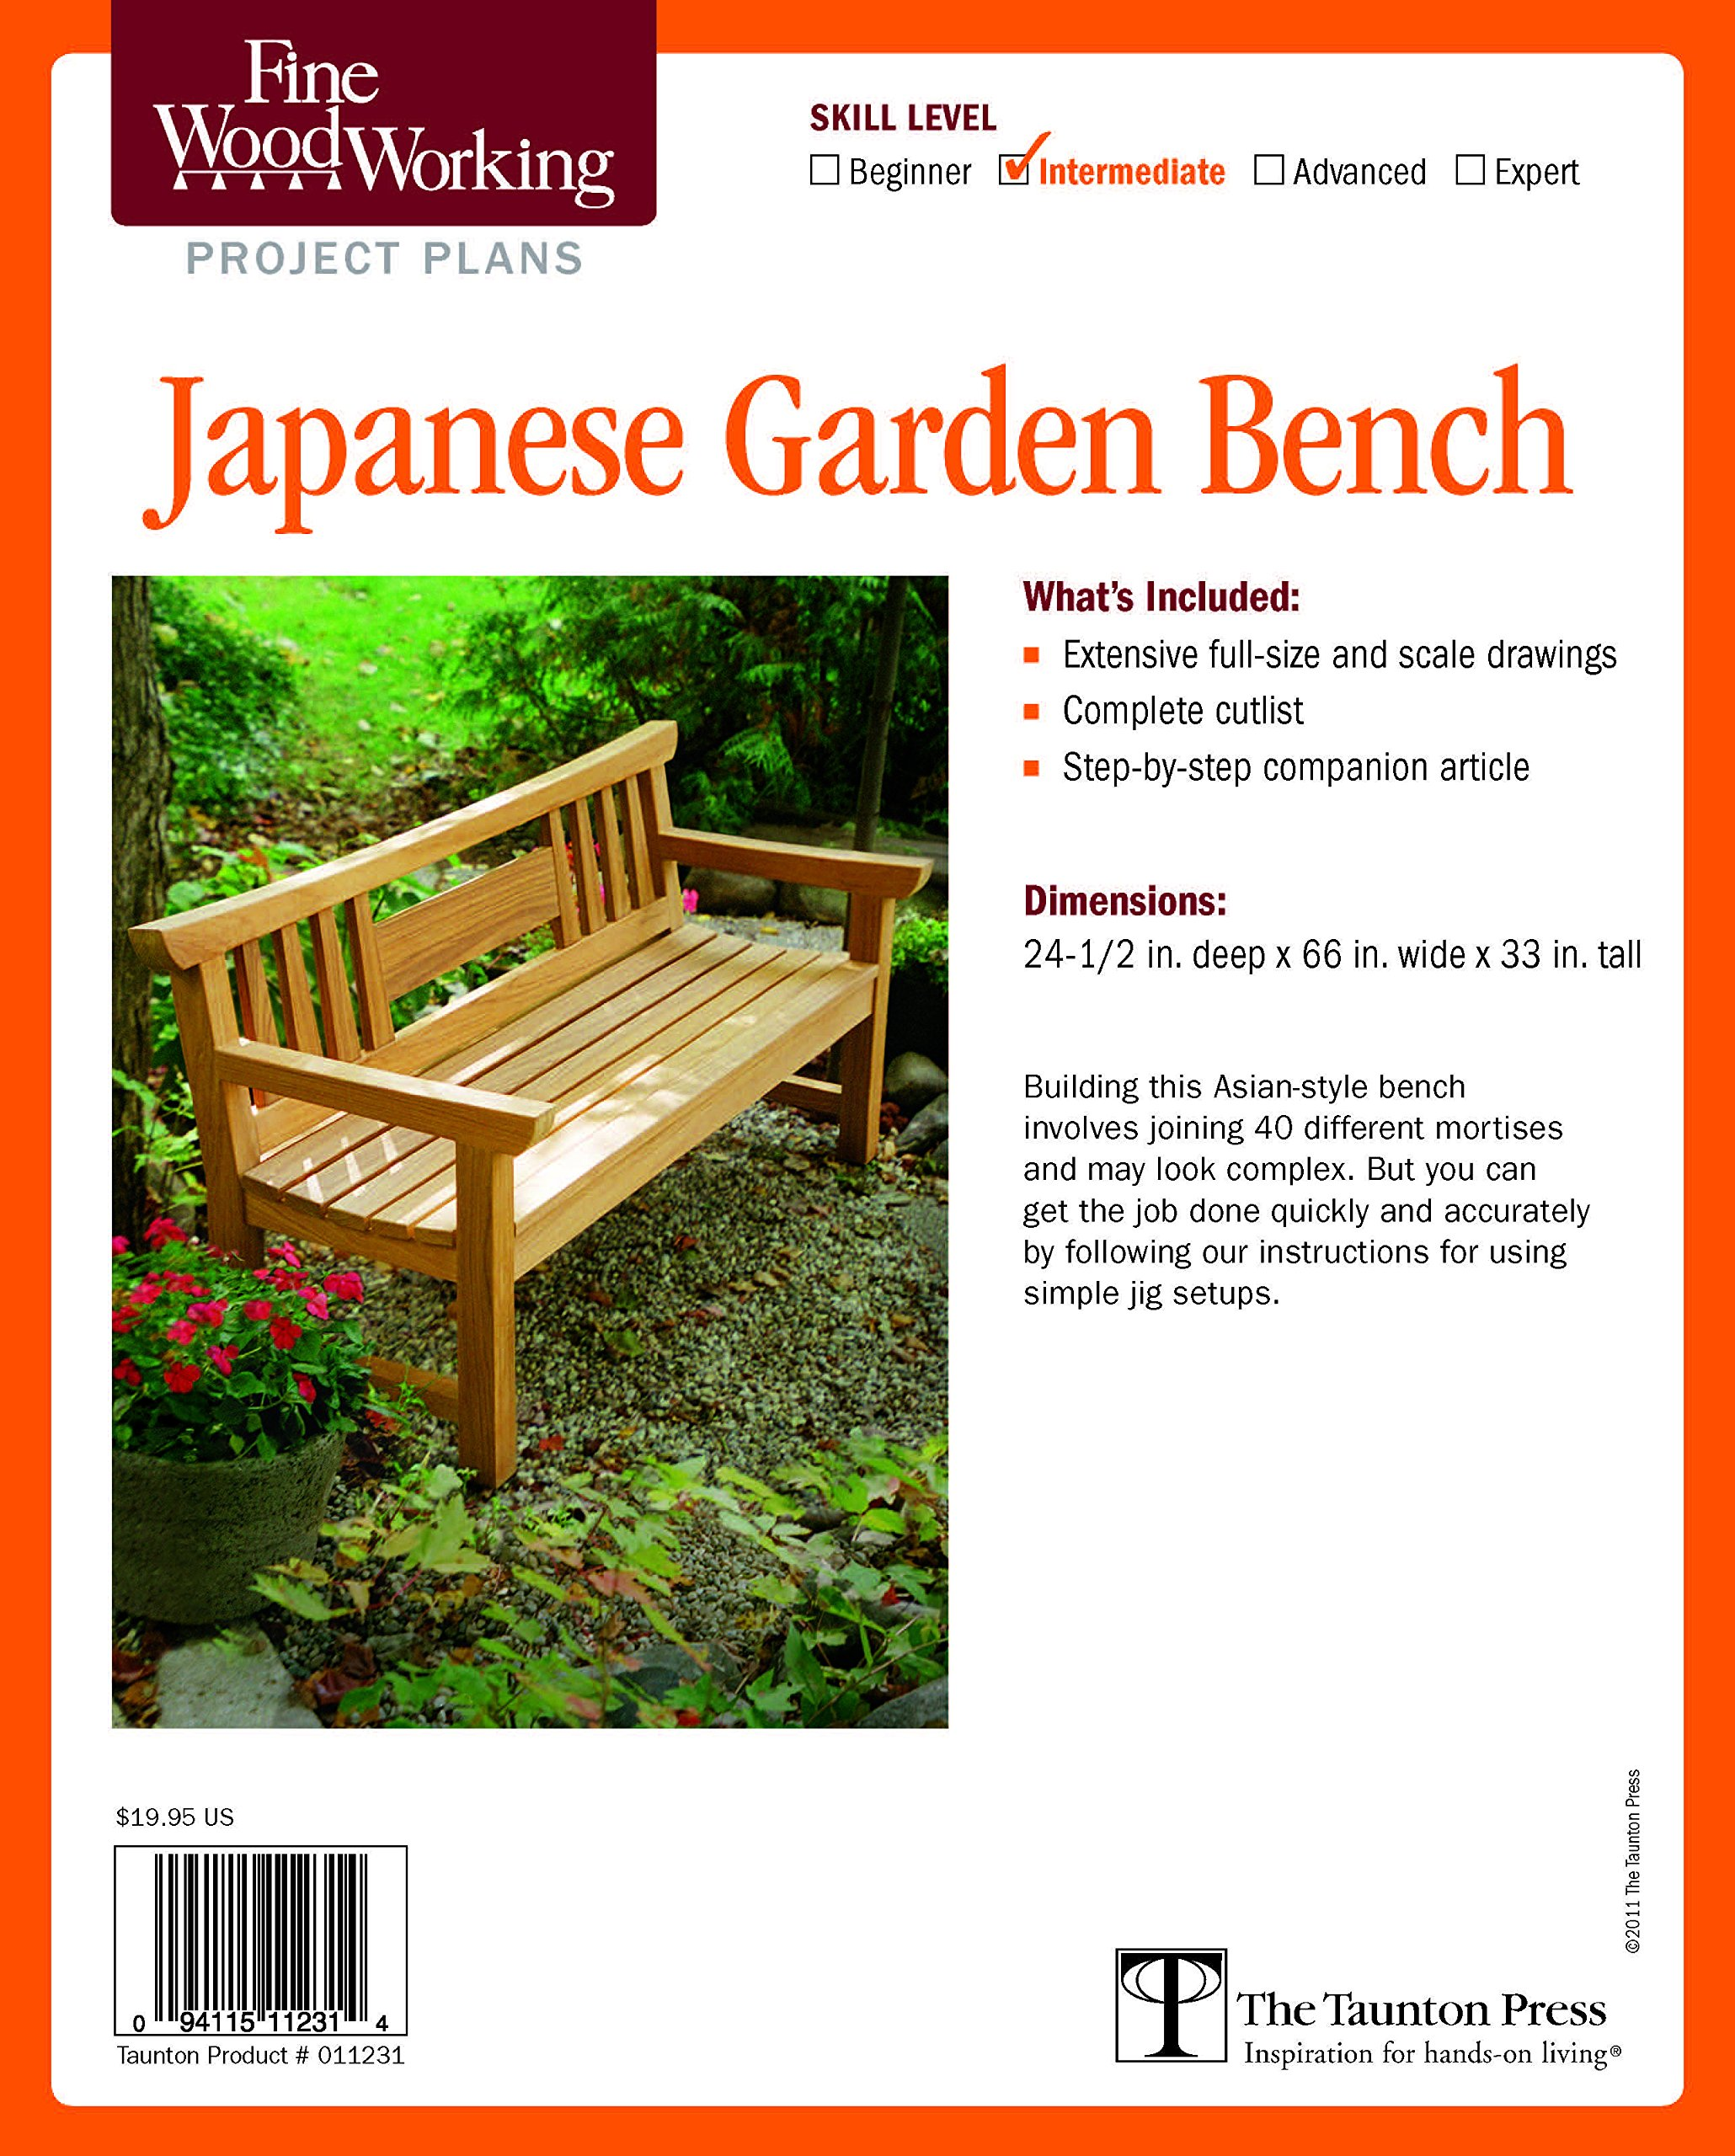 Merveilleux Amazon.com: Fine Woodworkingu0027s Japanese Garden Bench Plan (Fine Woodworking  Project Plans) (9781600856266): Editors Of Fine Woodworking: Books